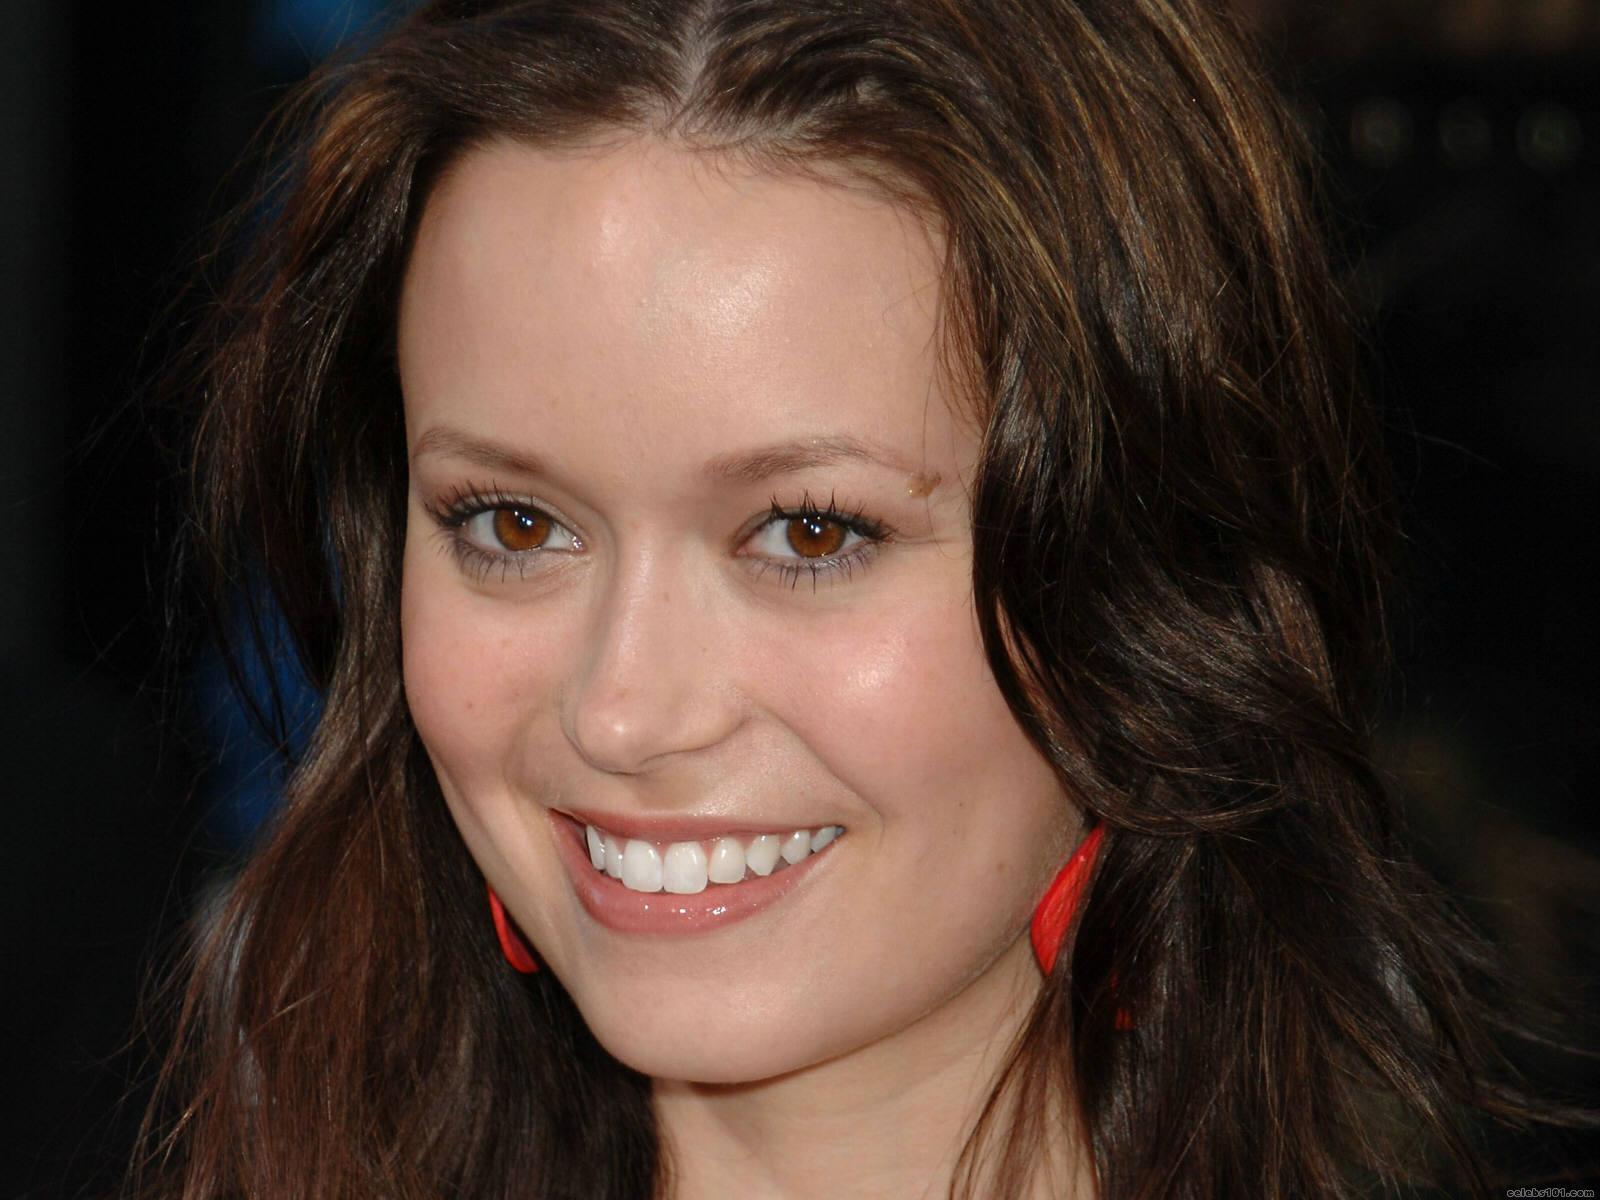 The 35-year old daughter of father (?) and mother(?), 168 cm tall Summer Glau in 2017 photo